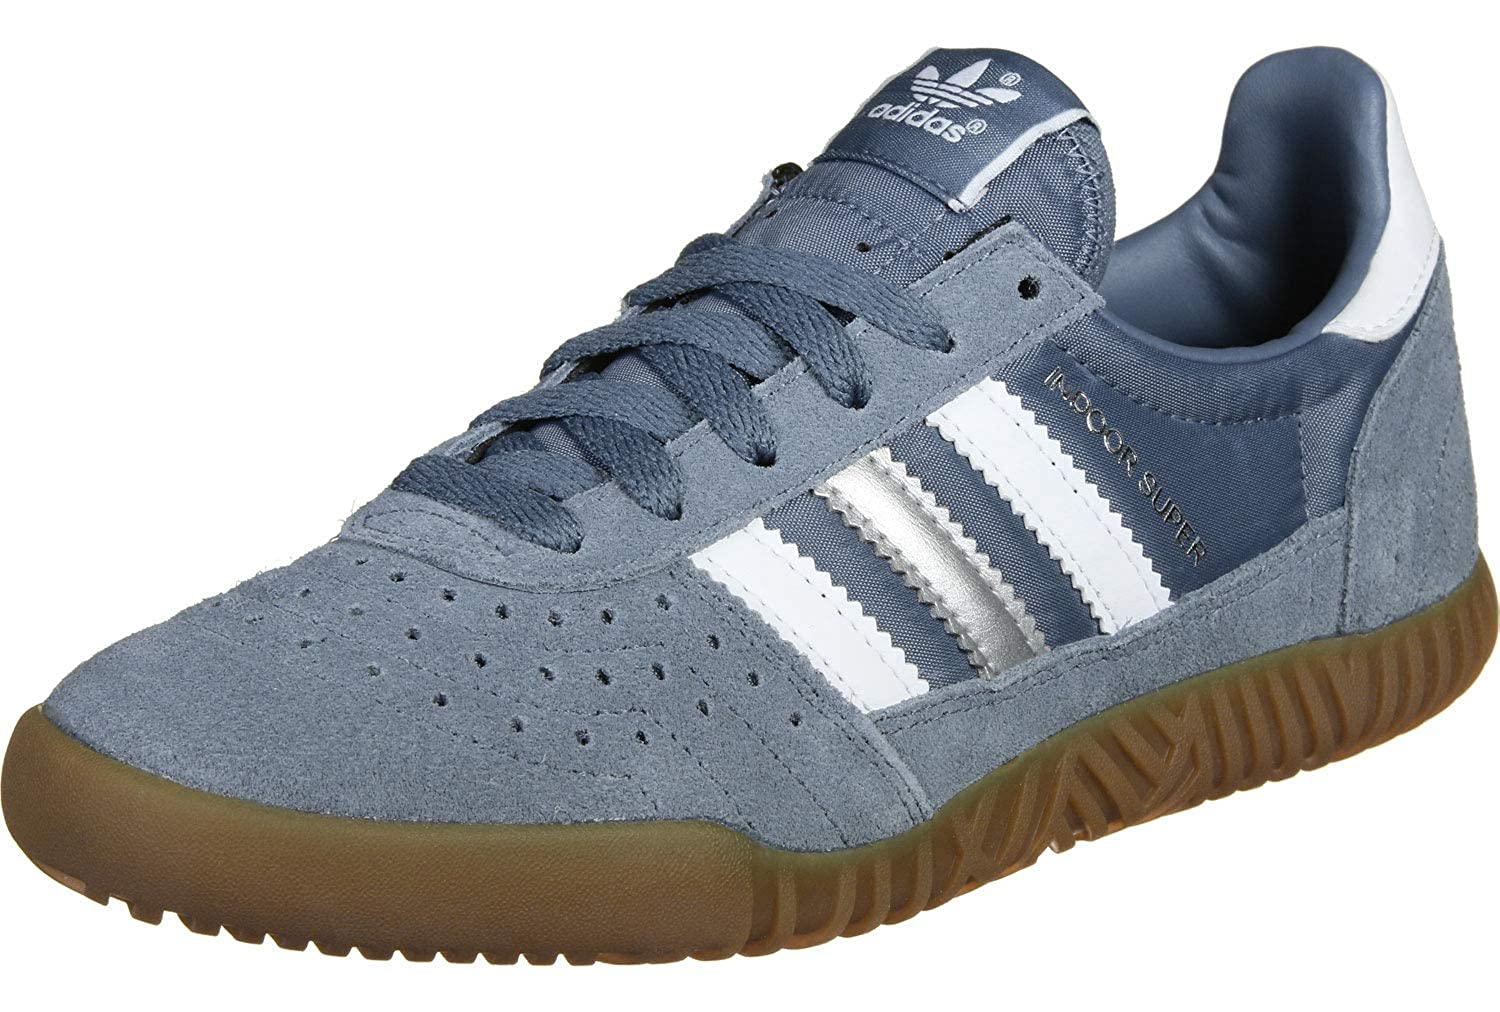 Chaussures Adidas Indoor Super: Amazon.it: Scarpe e borse